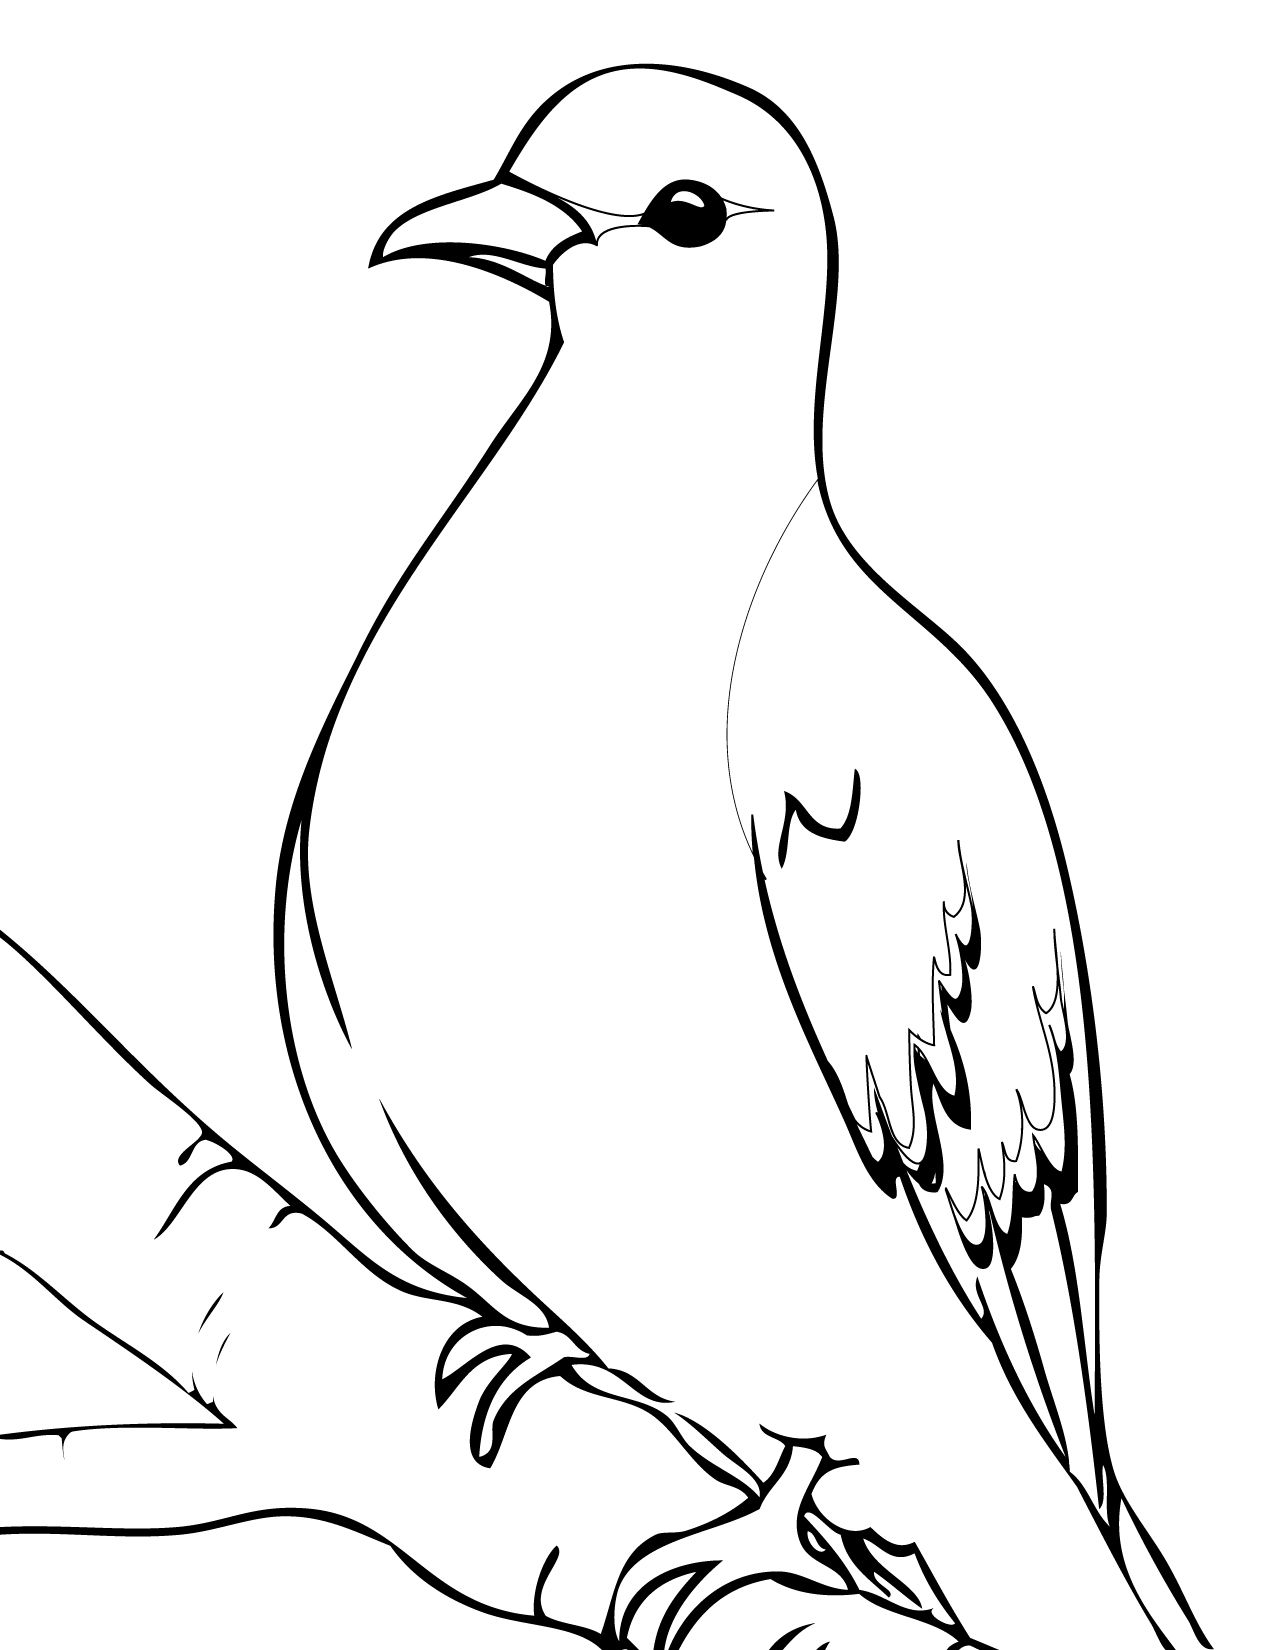 Mourning Dove Ink Jpg 1275 1650 Bird Coloring Pages Mourning